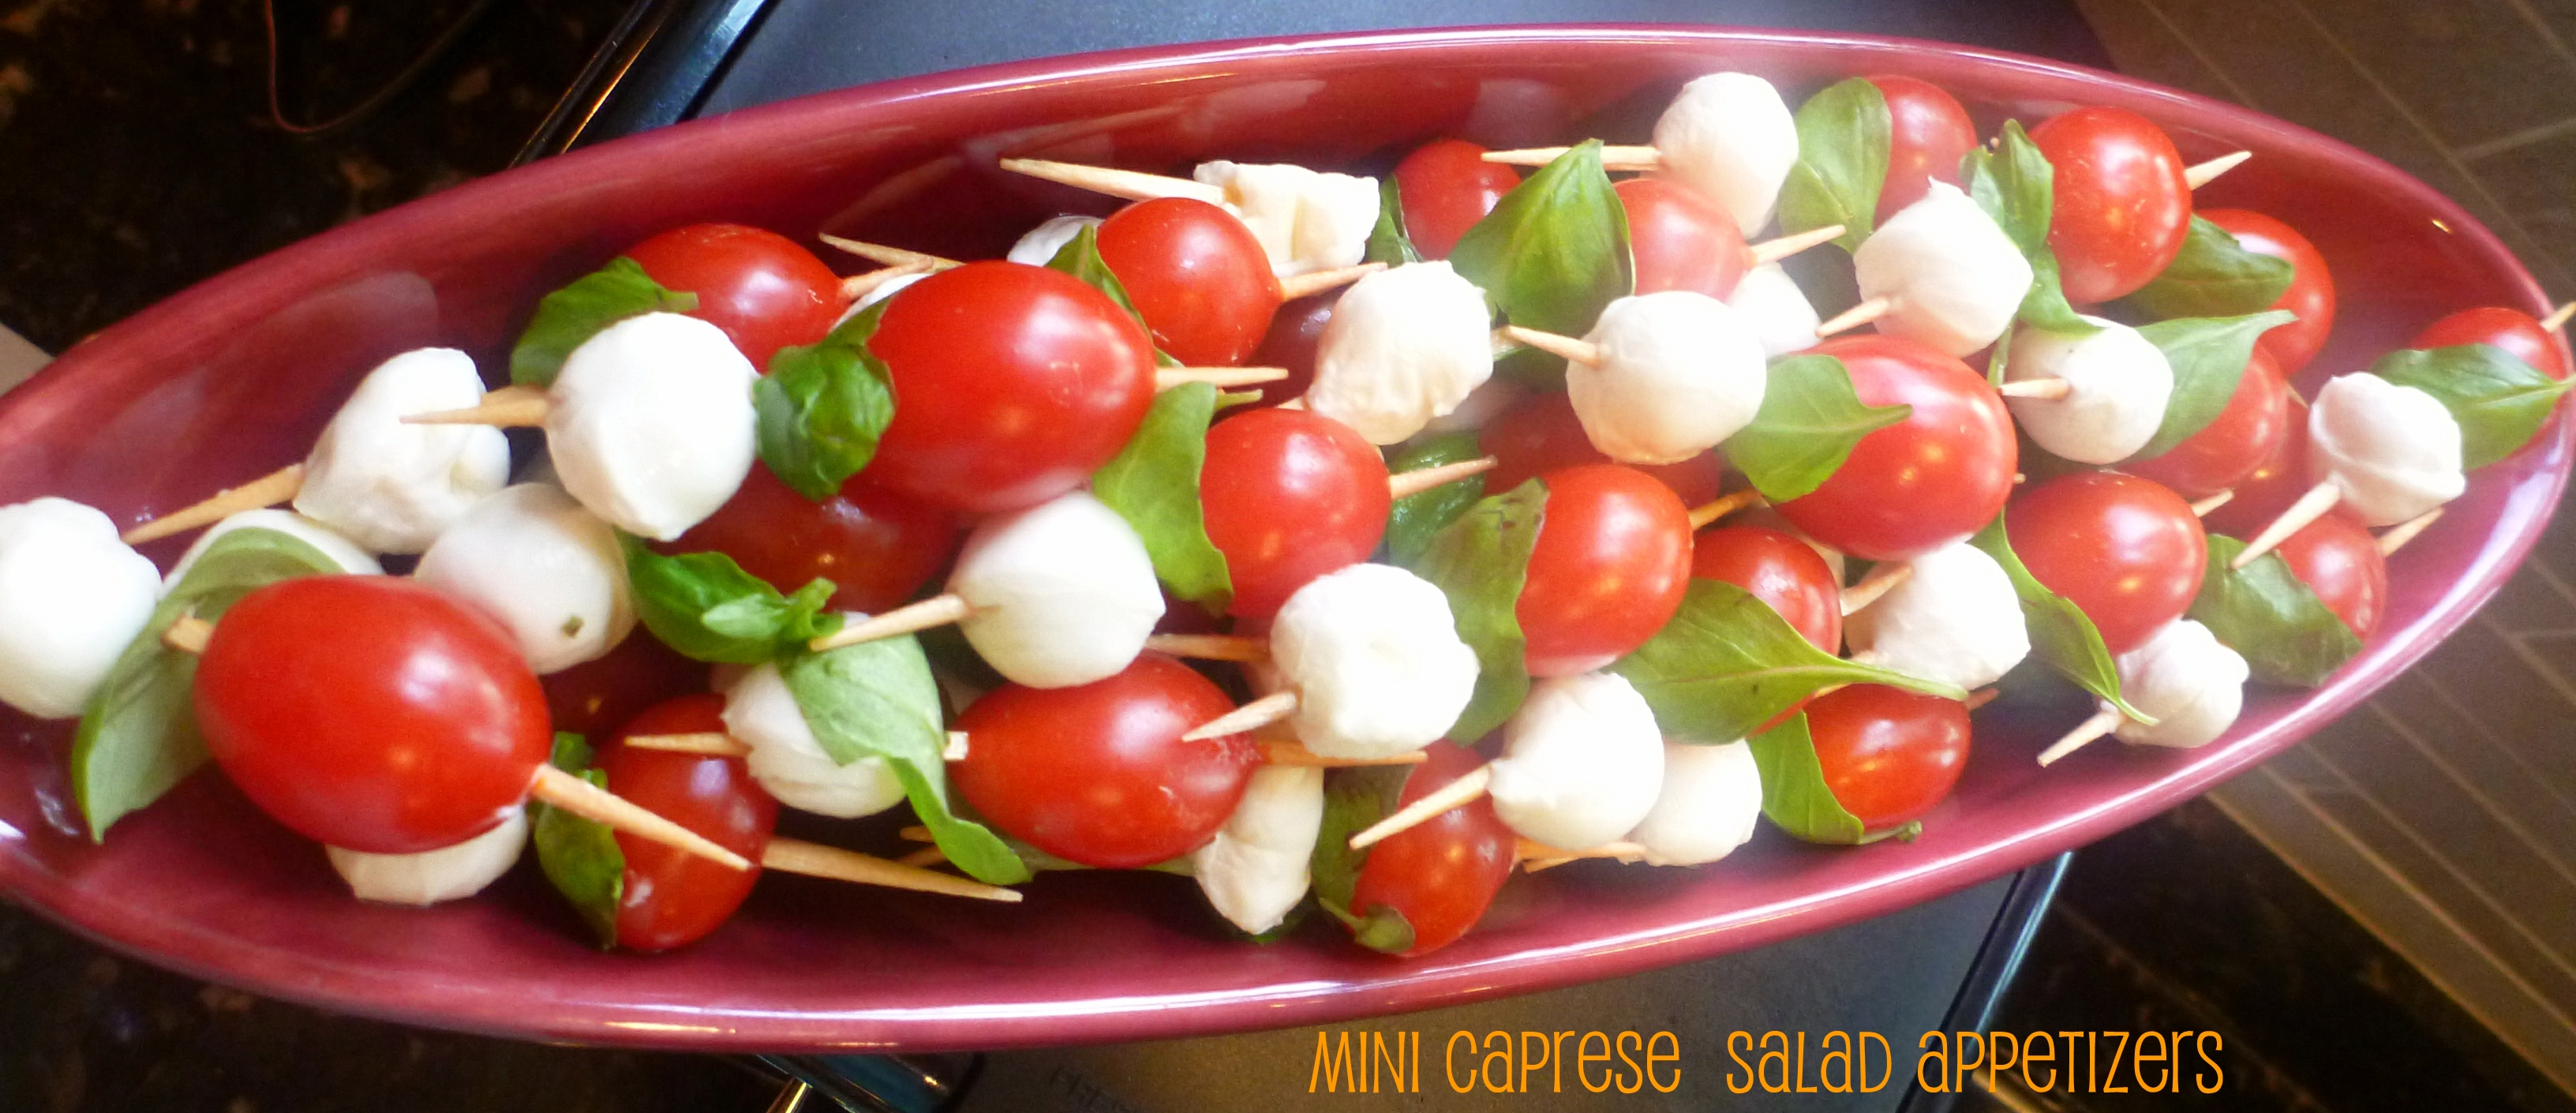 mini caprese salad appetizers - Learning Patience